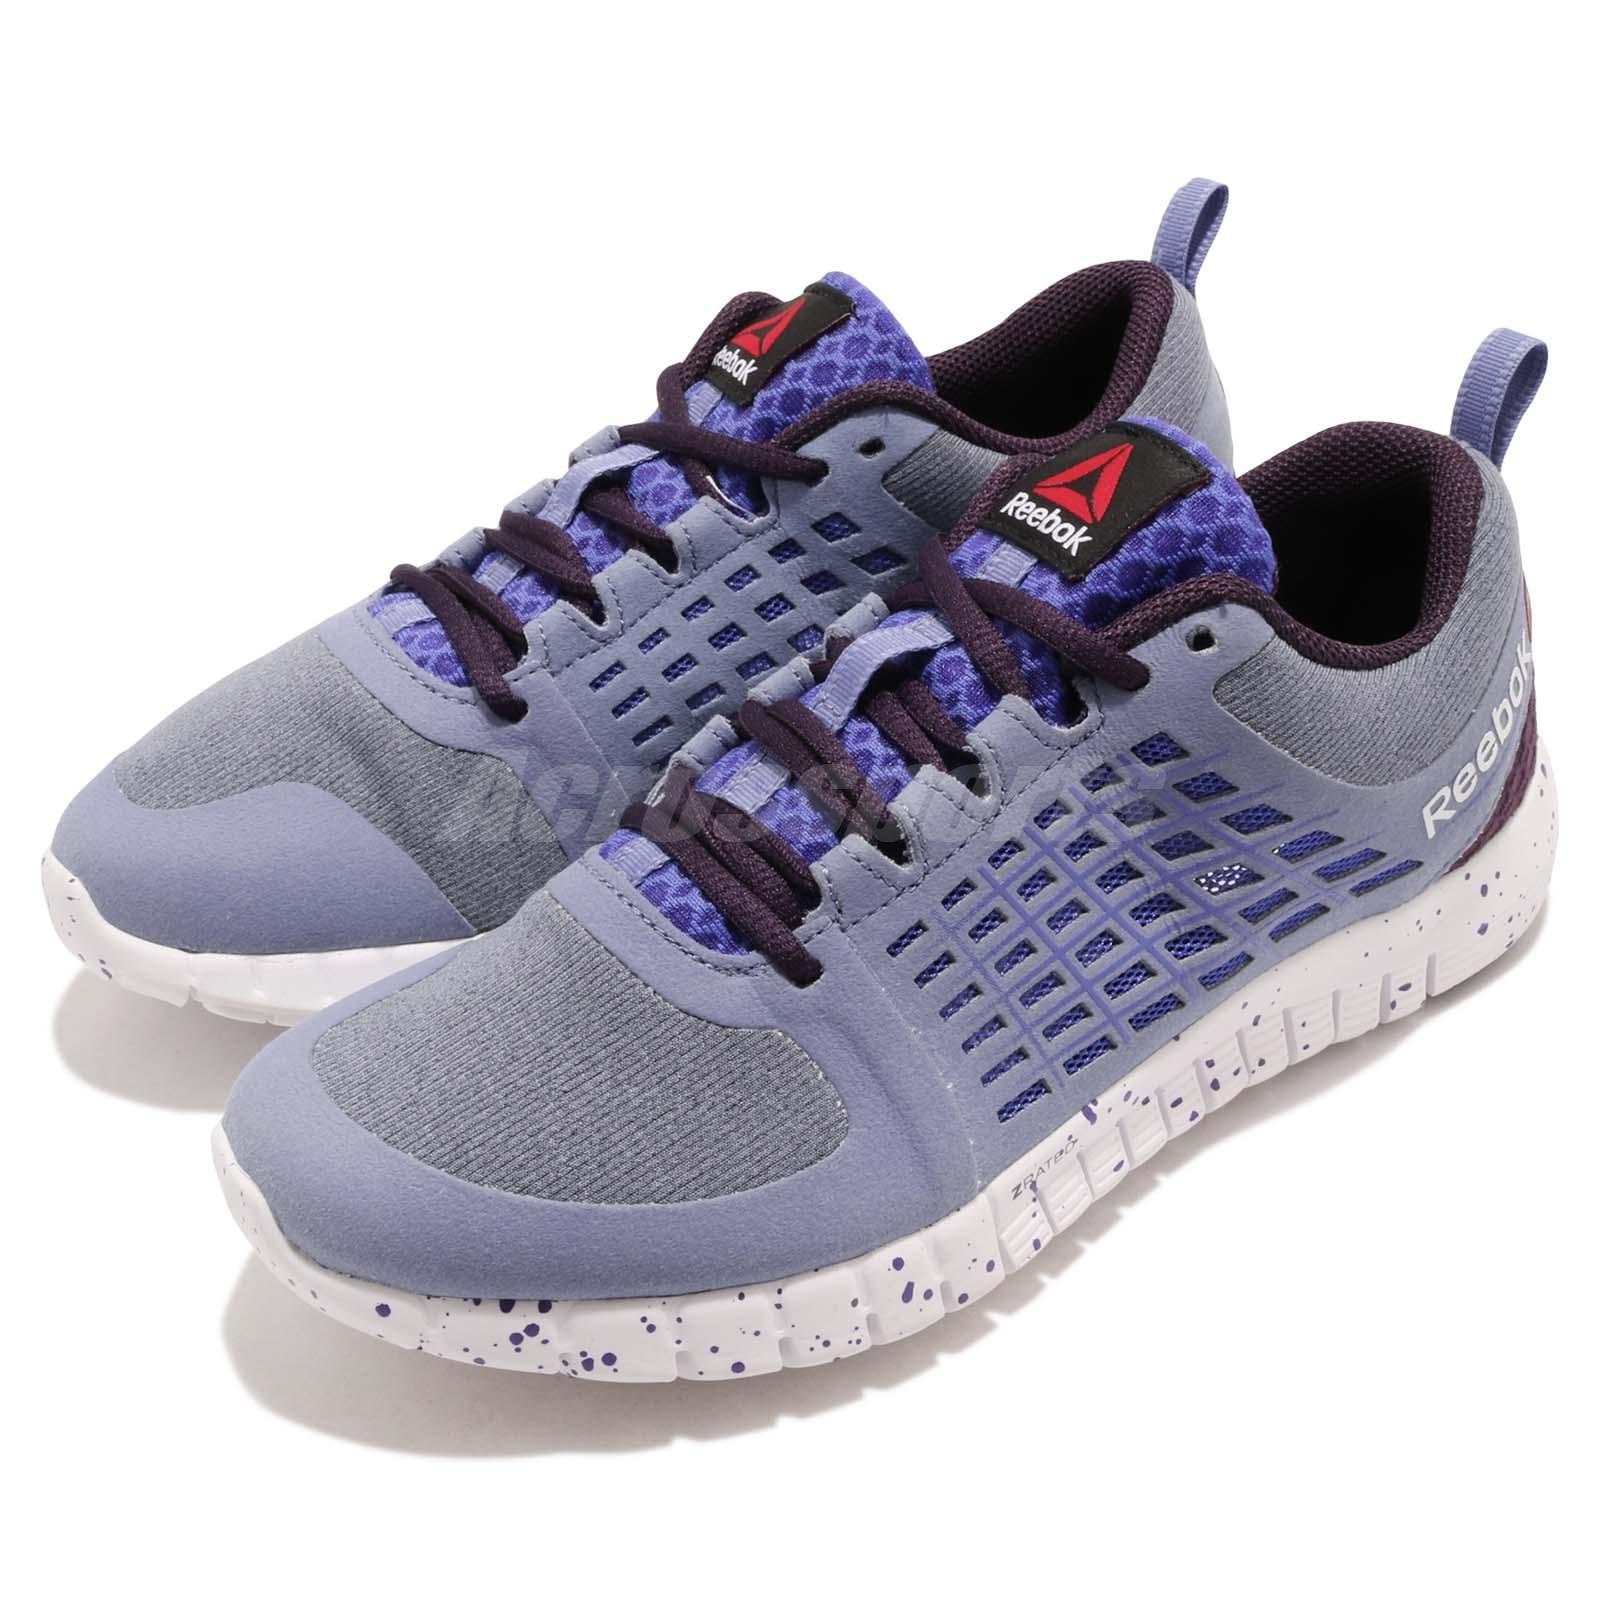 3e176cdb57e Details about Reebok Zquick 2.0 Flow Purple White Women Running Training  Shoes Sneakers M40415